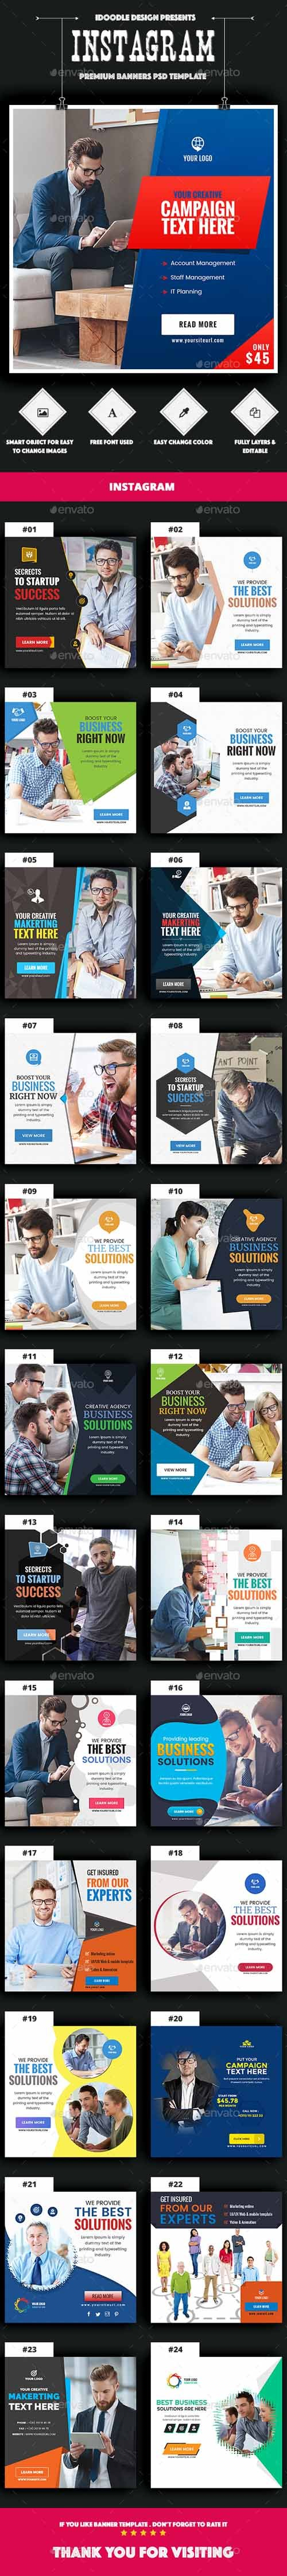 Multipurpose, Business, Startup Instagram Banners Ad - 25PSD 20153043